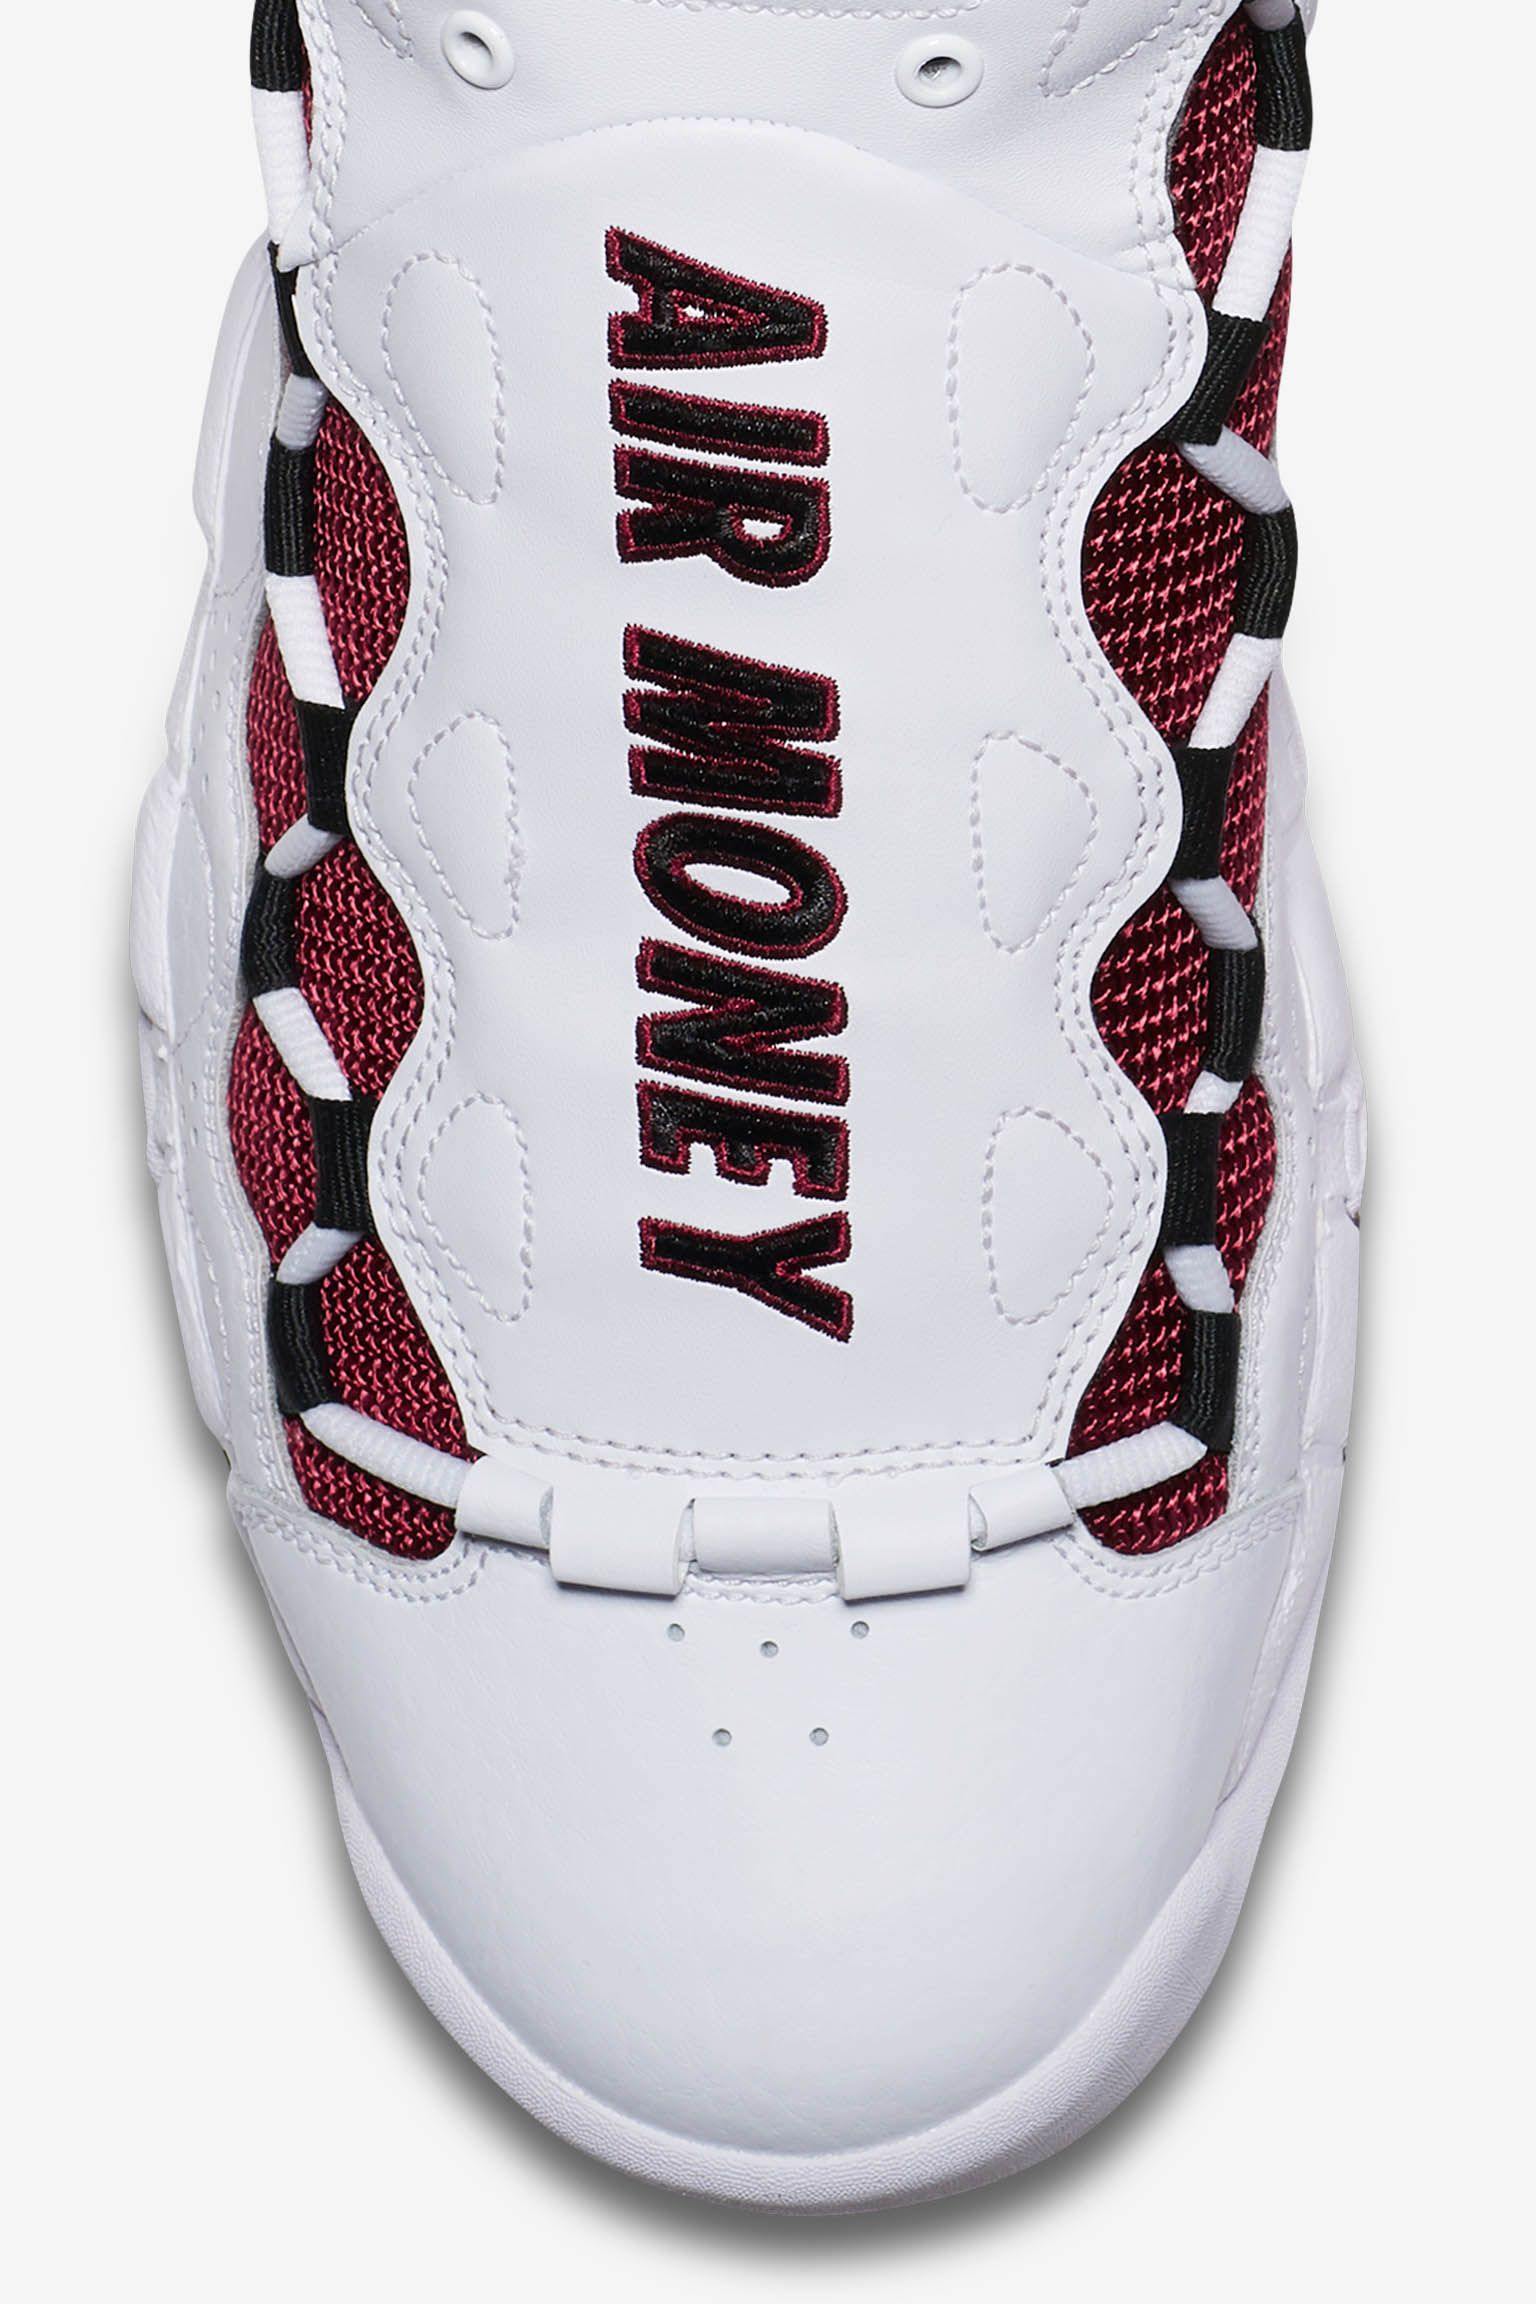 Nike Air More Money 'White & Black & University Red' Release Date